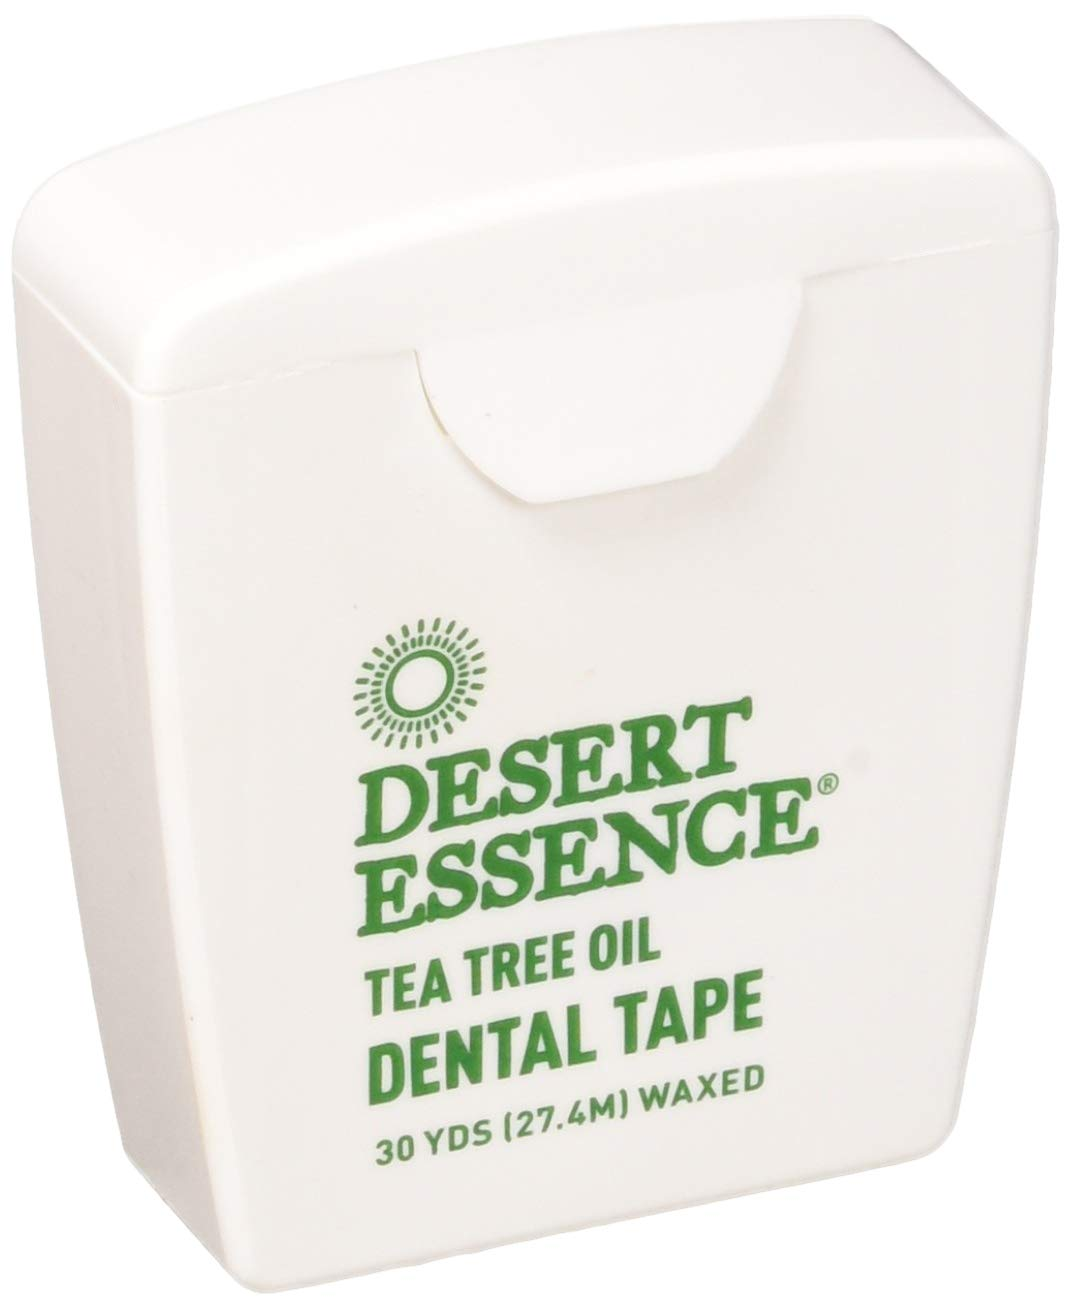 Desert Essence Tea Tree Dental Tape, 6 X 30 yd, 6 Count 350645